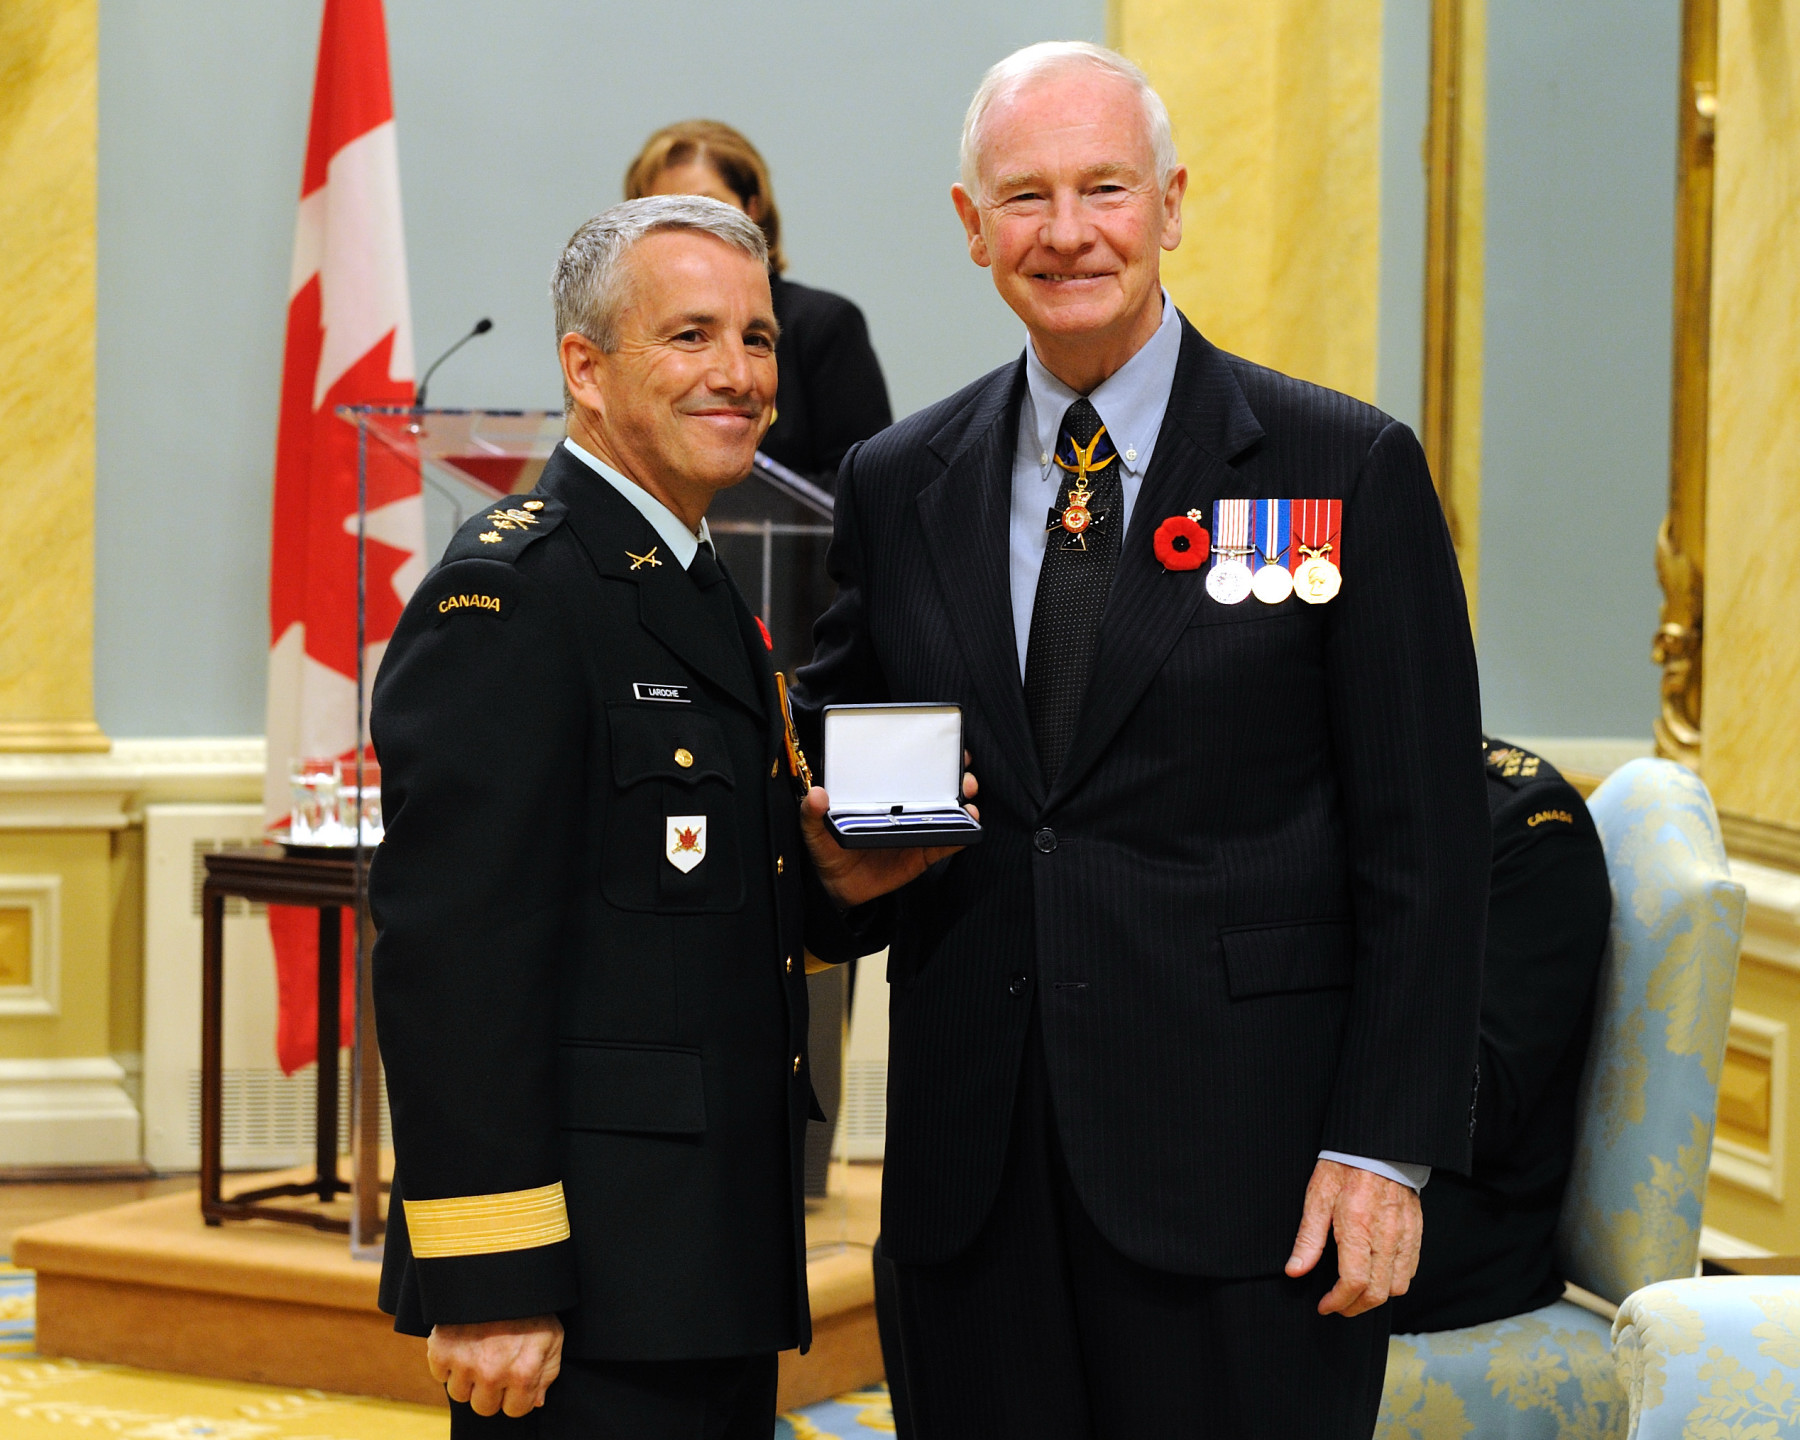 Brigadier-General Joseph René Marcel Guy Laroche, O.M.M., M.S.C., C.D., received the Meritorious Service Cross (Military Division) from the Governor General. Following the earthquake in Haiti, Brigadier-General Laroche modelled and developed an operation plan within a multinational and inter-agency framework, which quickly distinguished itself from those of the other military forces. Brigadier-General Laroche's altruism and his capacity to analyze operational issues, combined with his close collaboration with the Canadian Ambassador, the Prime Minister of Haiti, and the forces in place, enabled Canada to be one of the first countries to contribute humanitarian assistance to the Haitian people, from January to March 2010. This is the second Meritorious Service Cross for Brigadier-General Laroche.